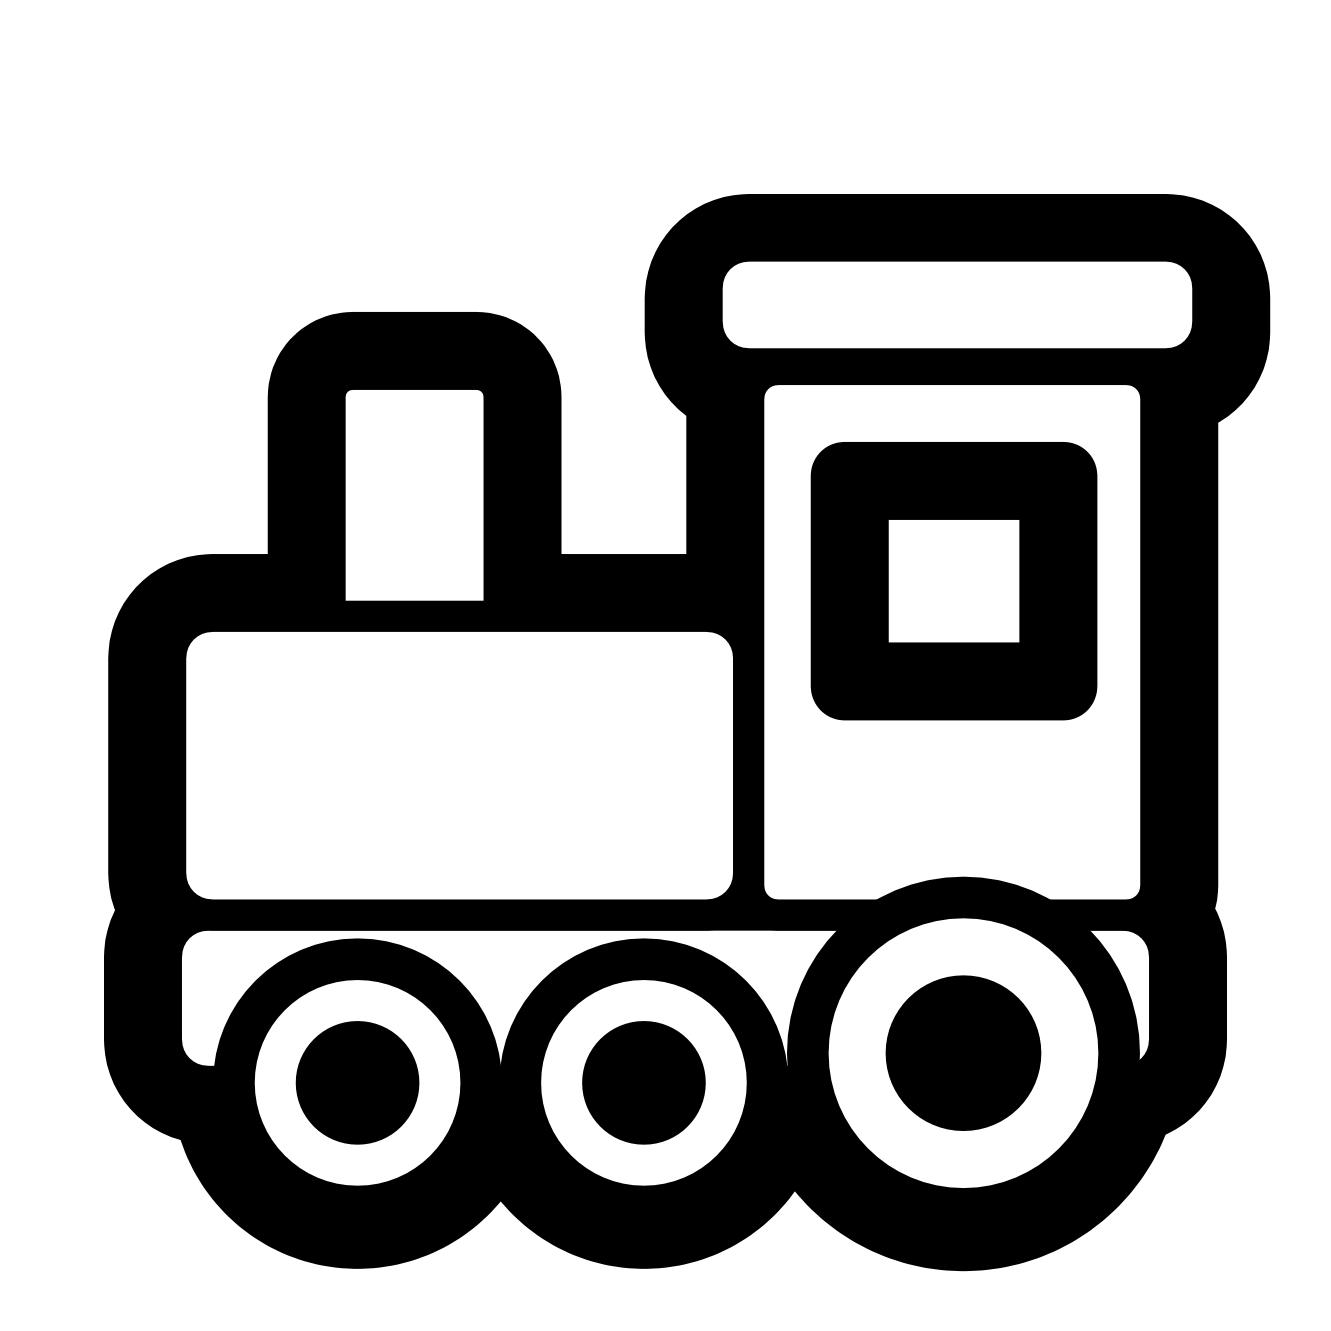 images for train on tracks clipart [ 1331 x 1331 Pixel ]